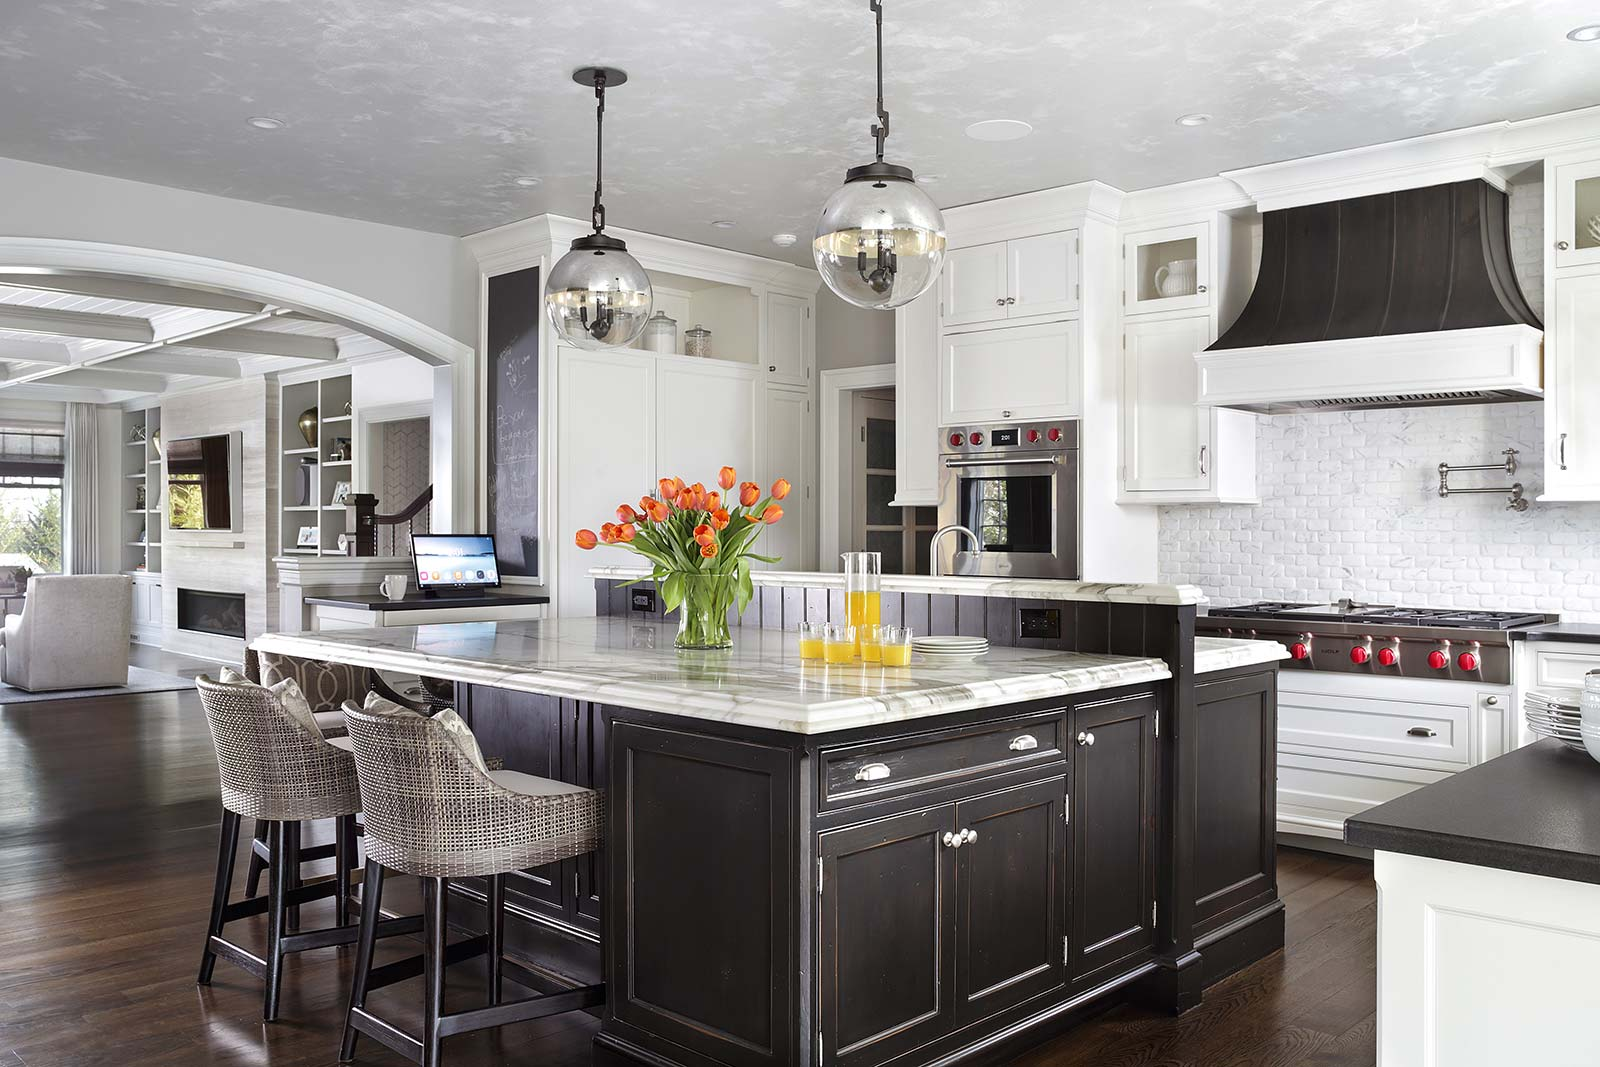 How To Tile Kitchen Island